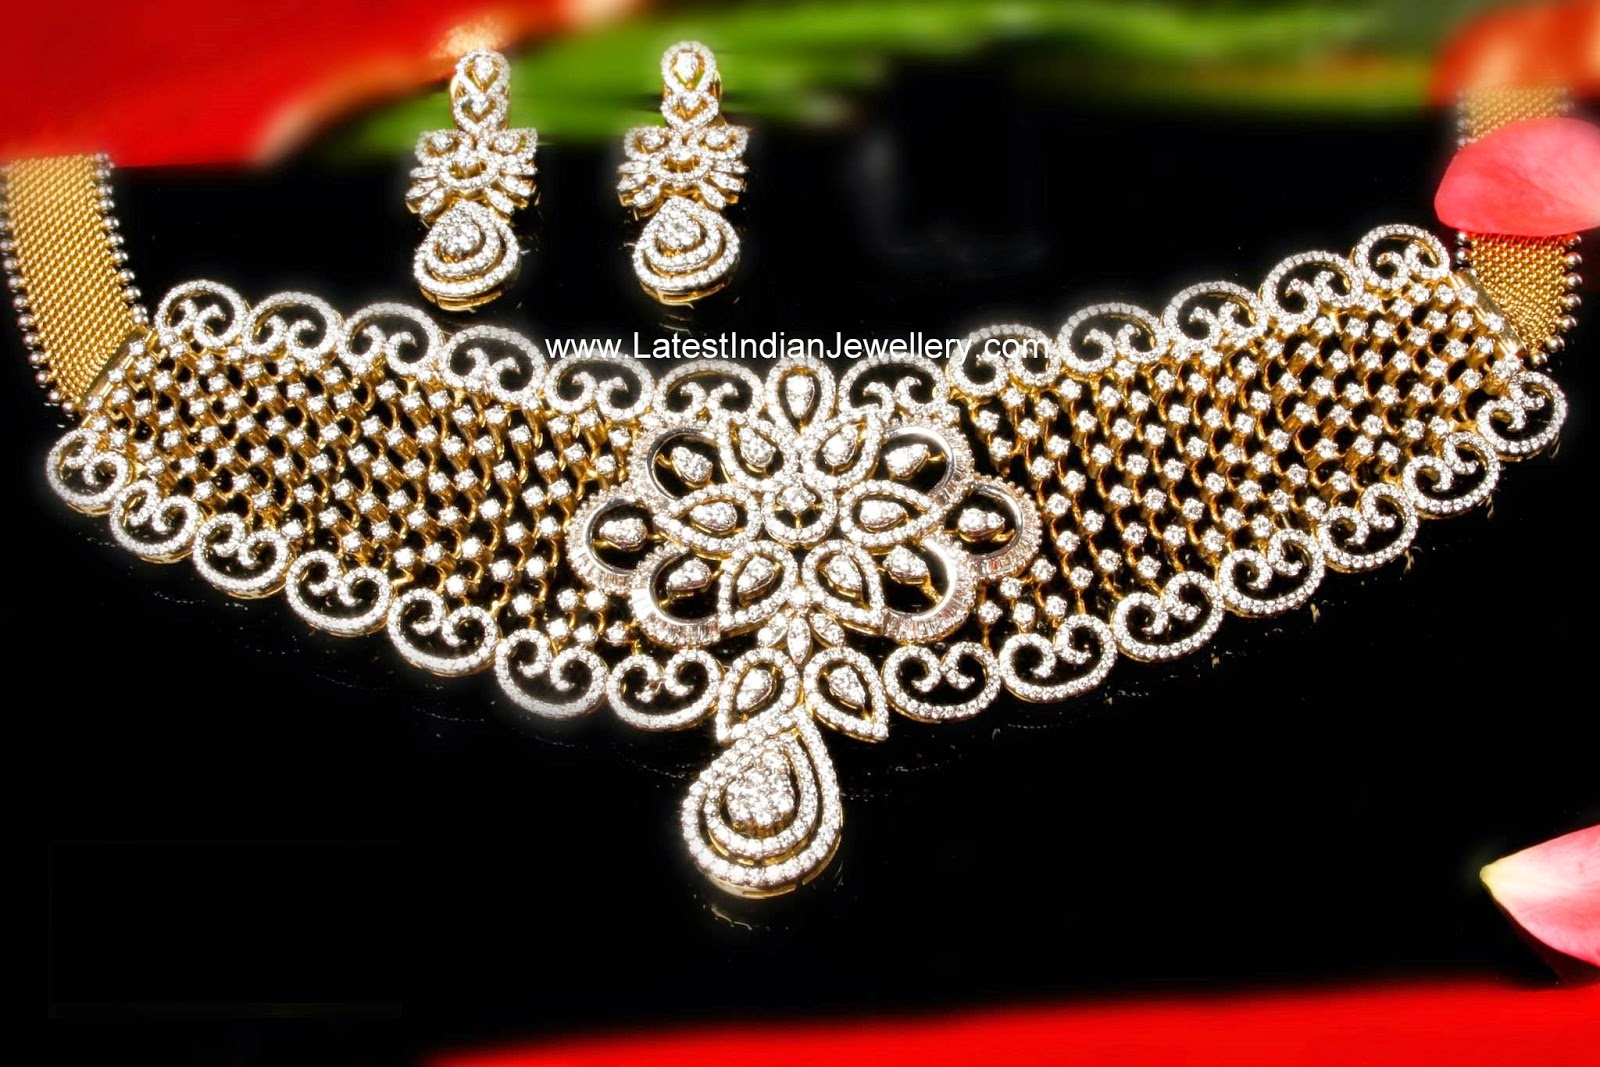 Exclusive Indian Diamond Choker Set